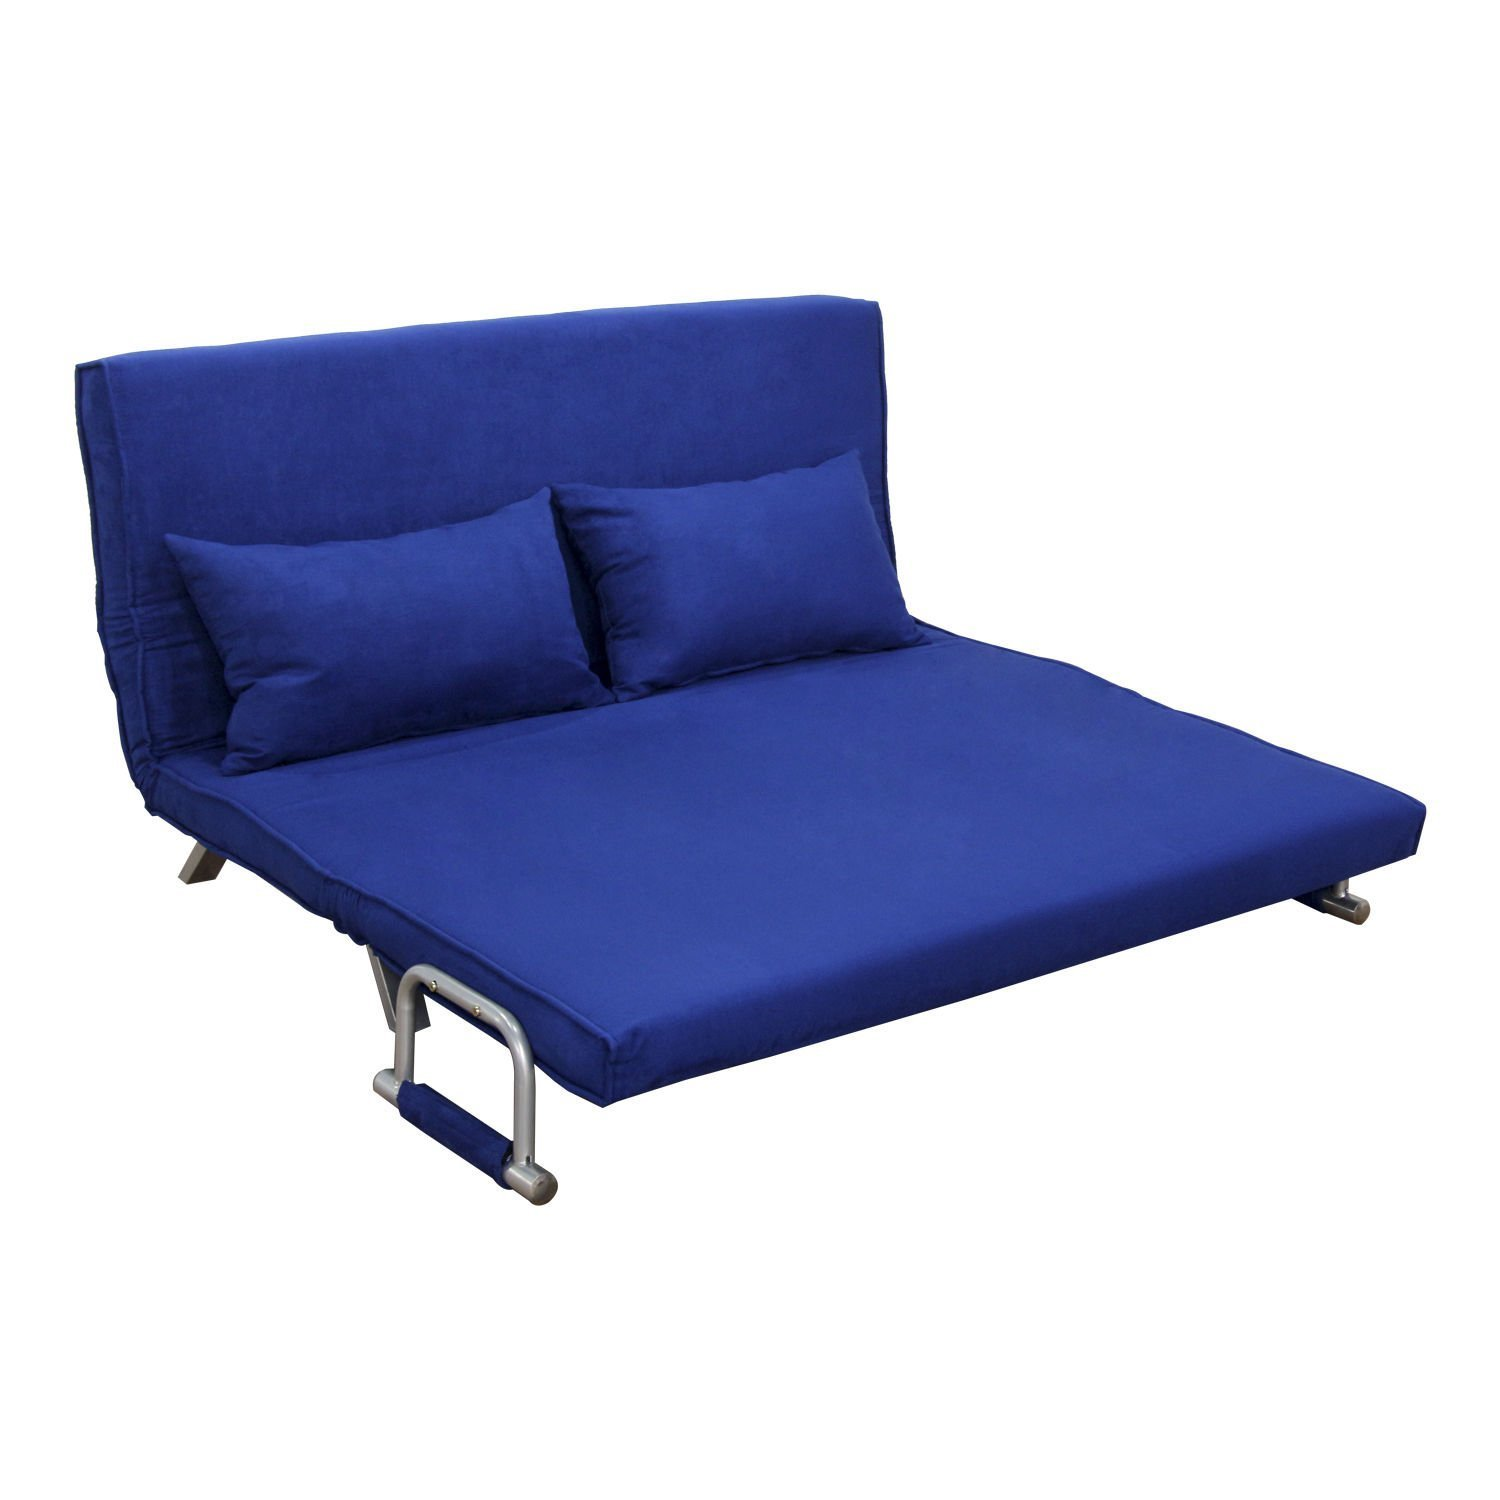 "Amazon Hom 61"" Folding Futon Sleeper Couch Sofa Bed Blue"